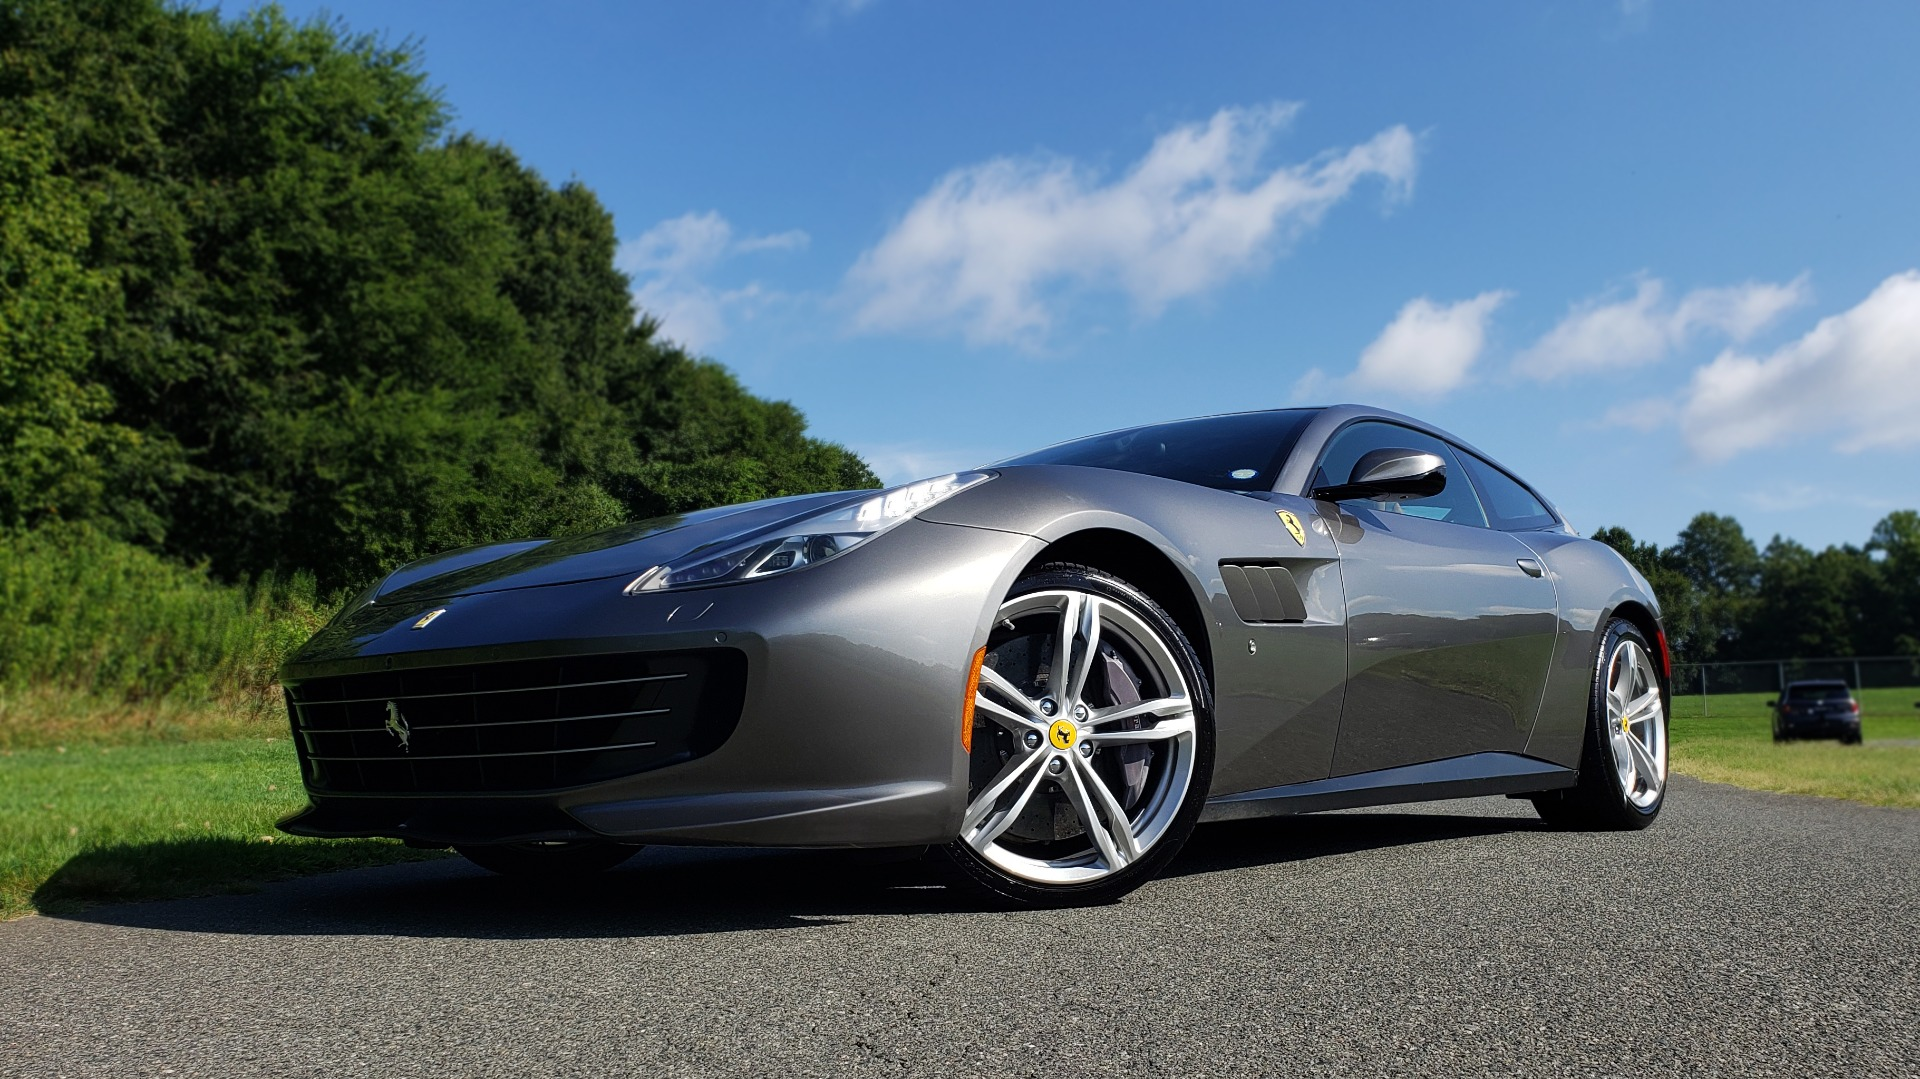 Used 2017 Ferrari GTC4 LUSSO AWD / PANO-ROOF / APPLE CAR PLAY / SUSP LIFT / JBL SOUND for sale $188,999 at Formula Imports in Charlotte NC 28227 1